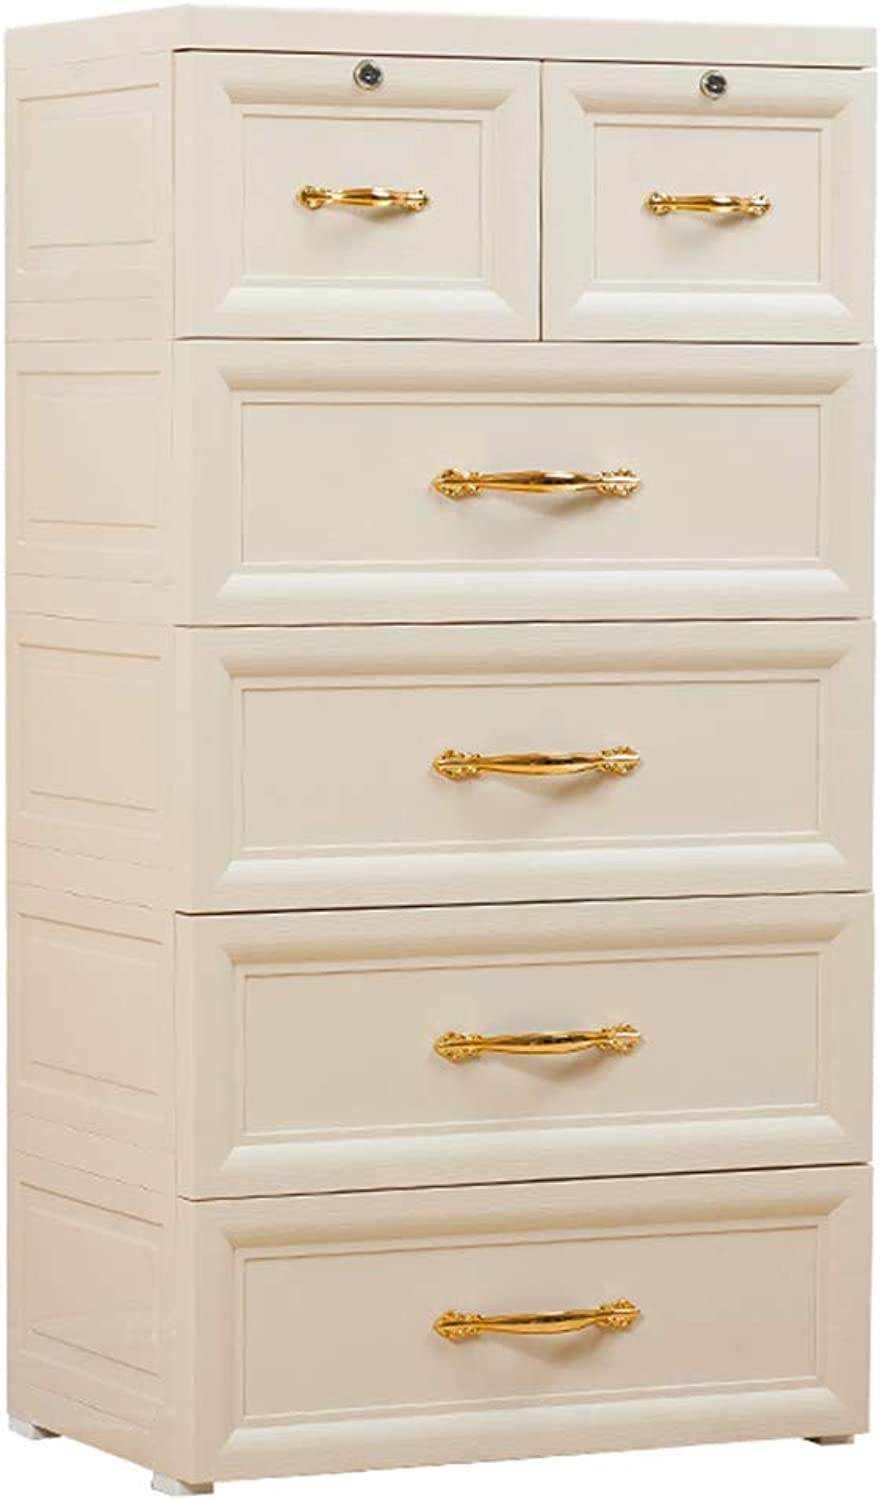 Zzg-2 Widening Finishing Cabinet, Living Room Frosted Feeling Combination Plastic Locker Thicken Drawer Type Storage Box, 40  60  113CM (color   White)